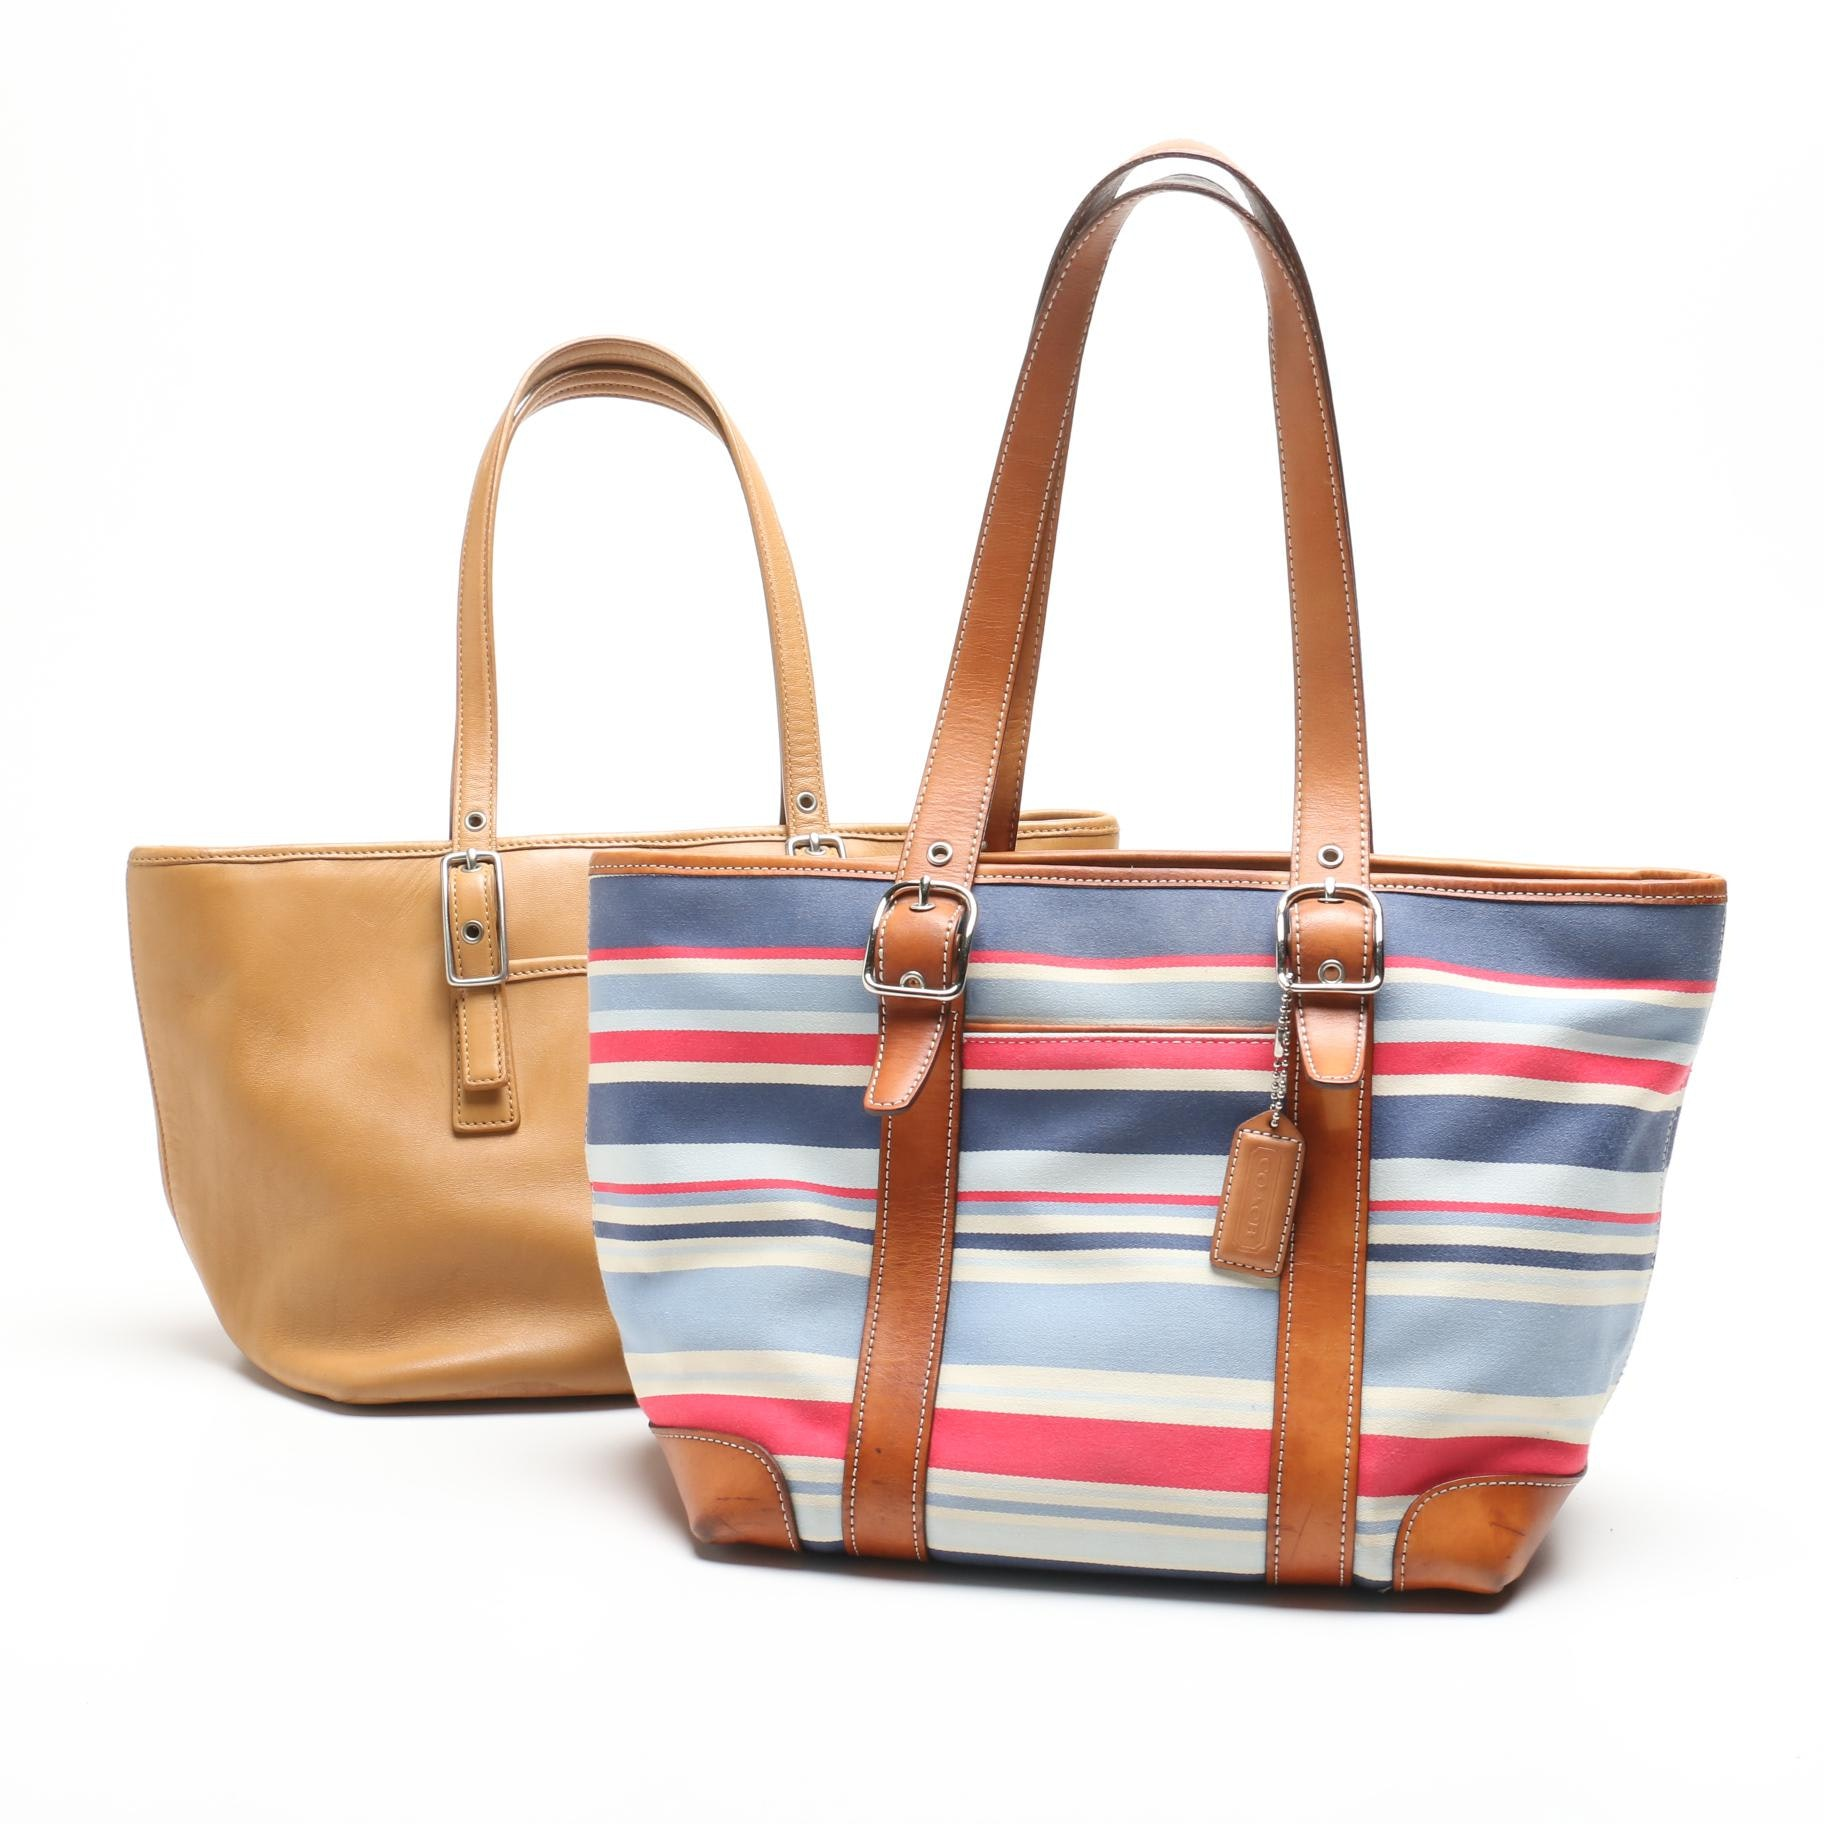 Coach Legacy Leather Market Tote and Striped Canvas Hamptons Tote Bag